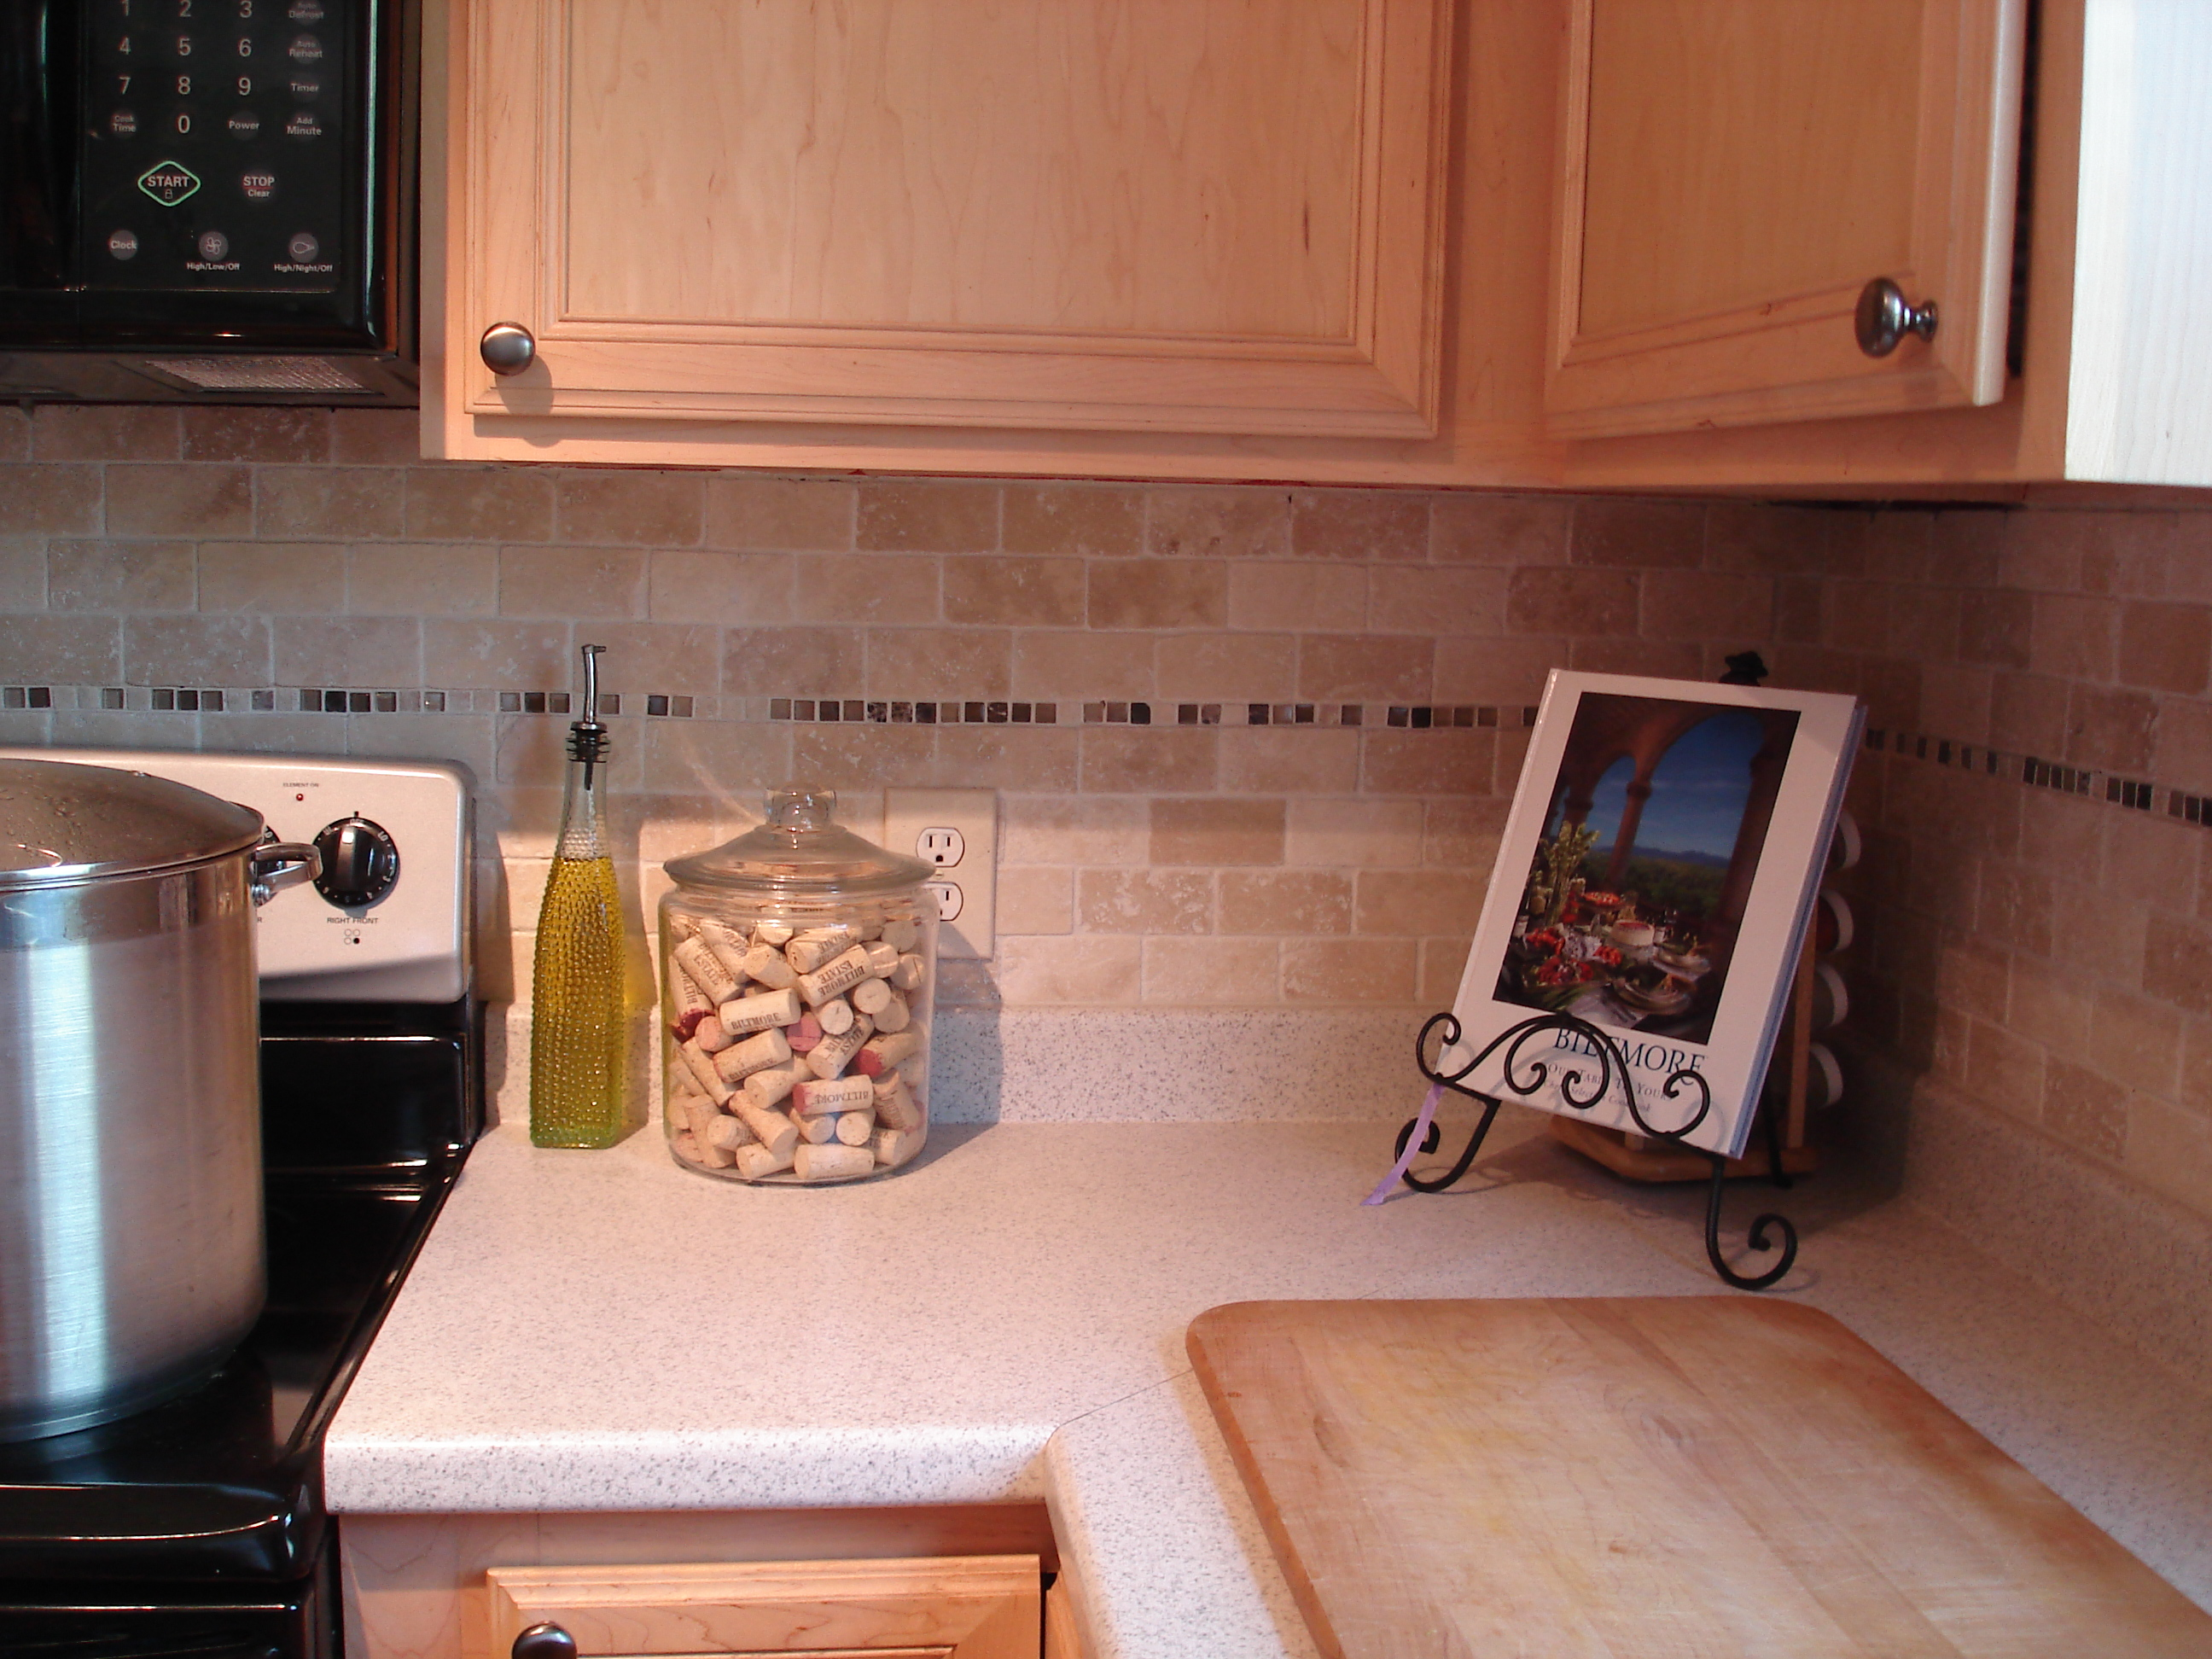 tutorial tile kitchen back splash backsplashes for kitchen Tutorial Tile Kitchen Back Splash